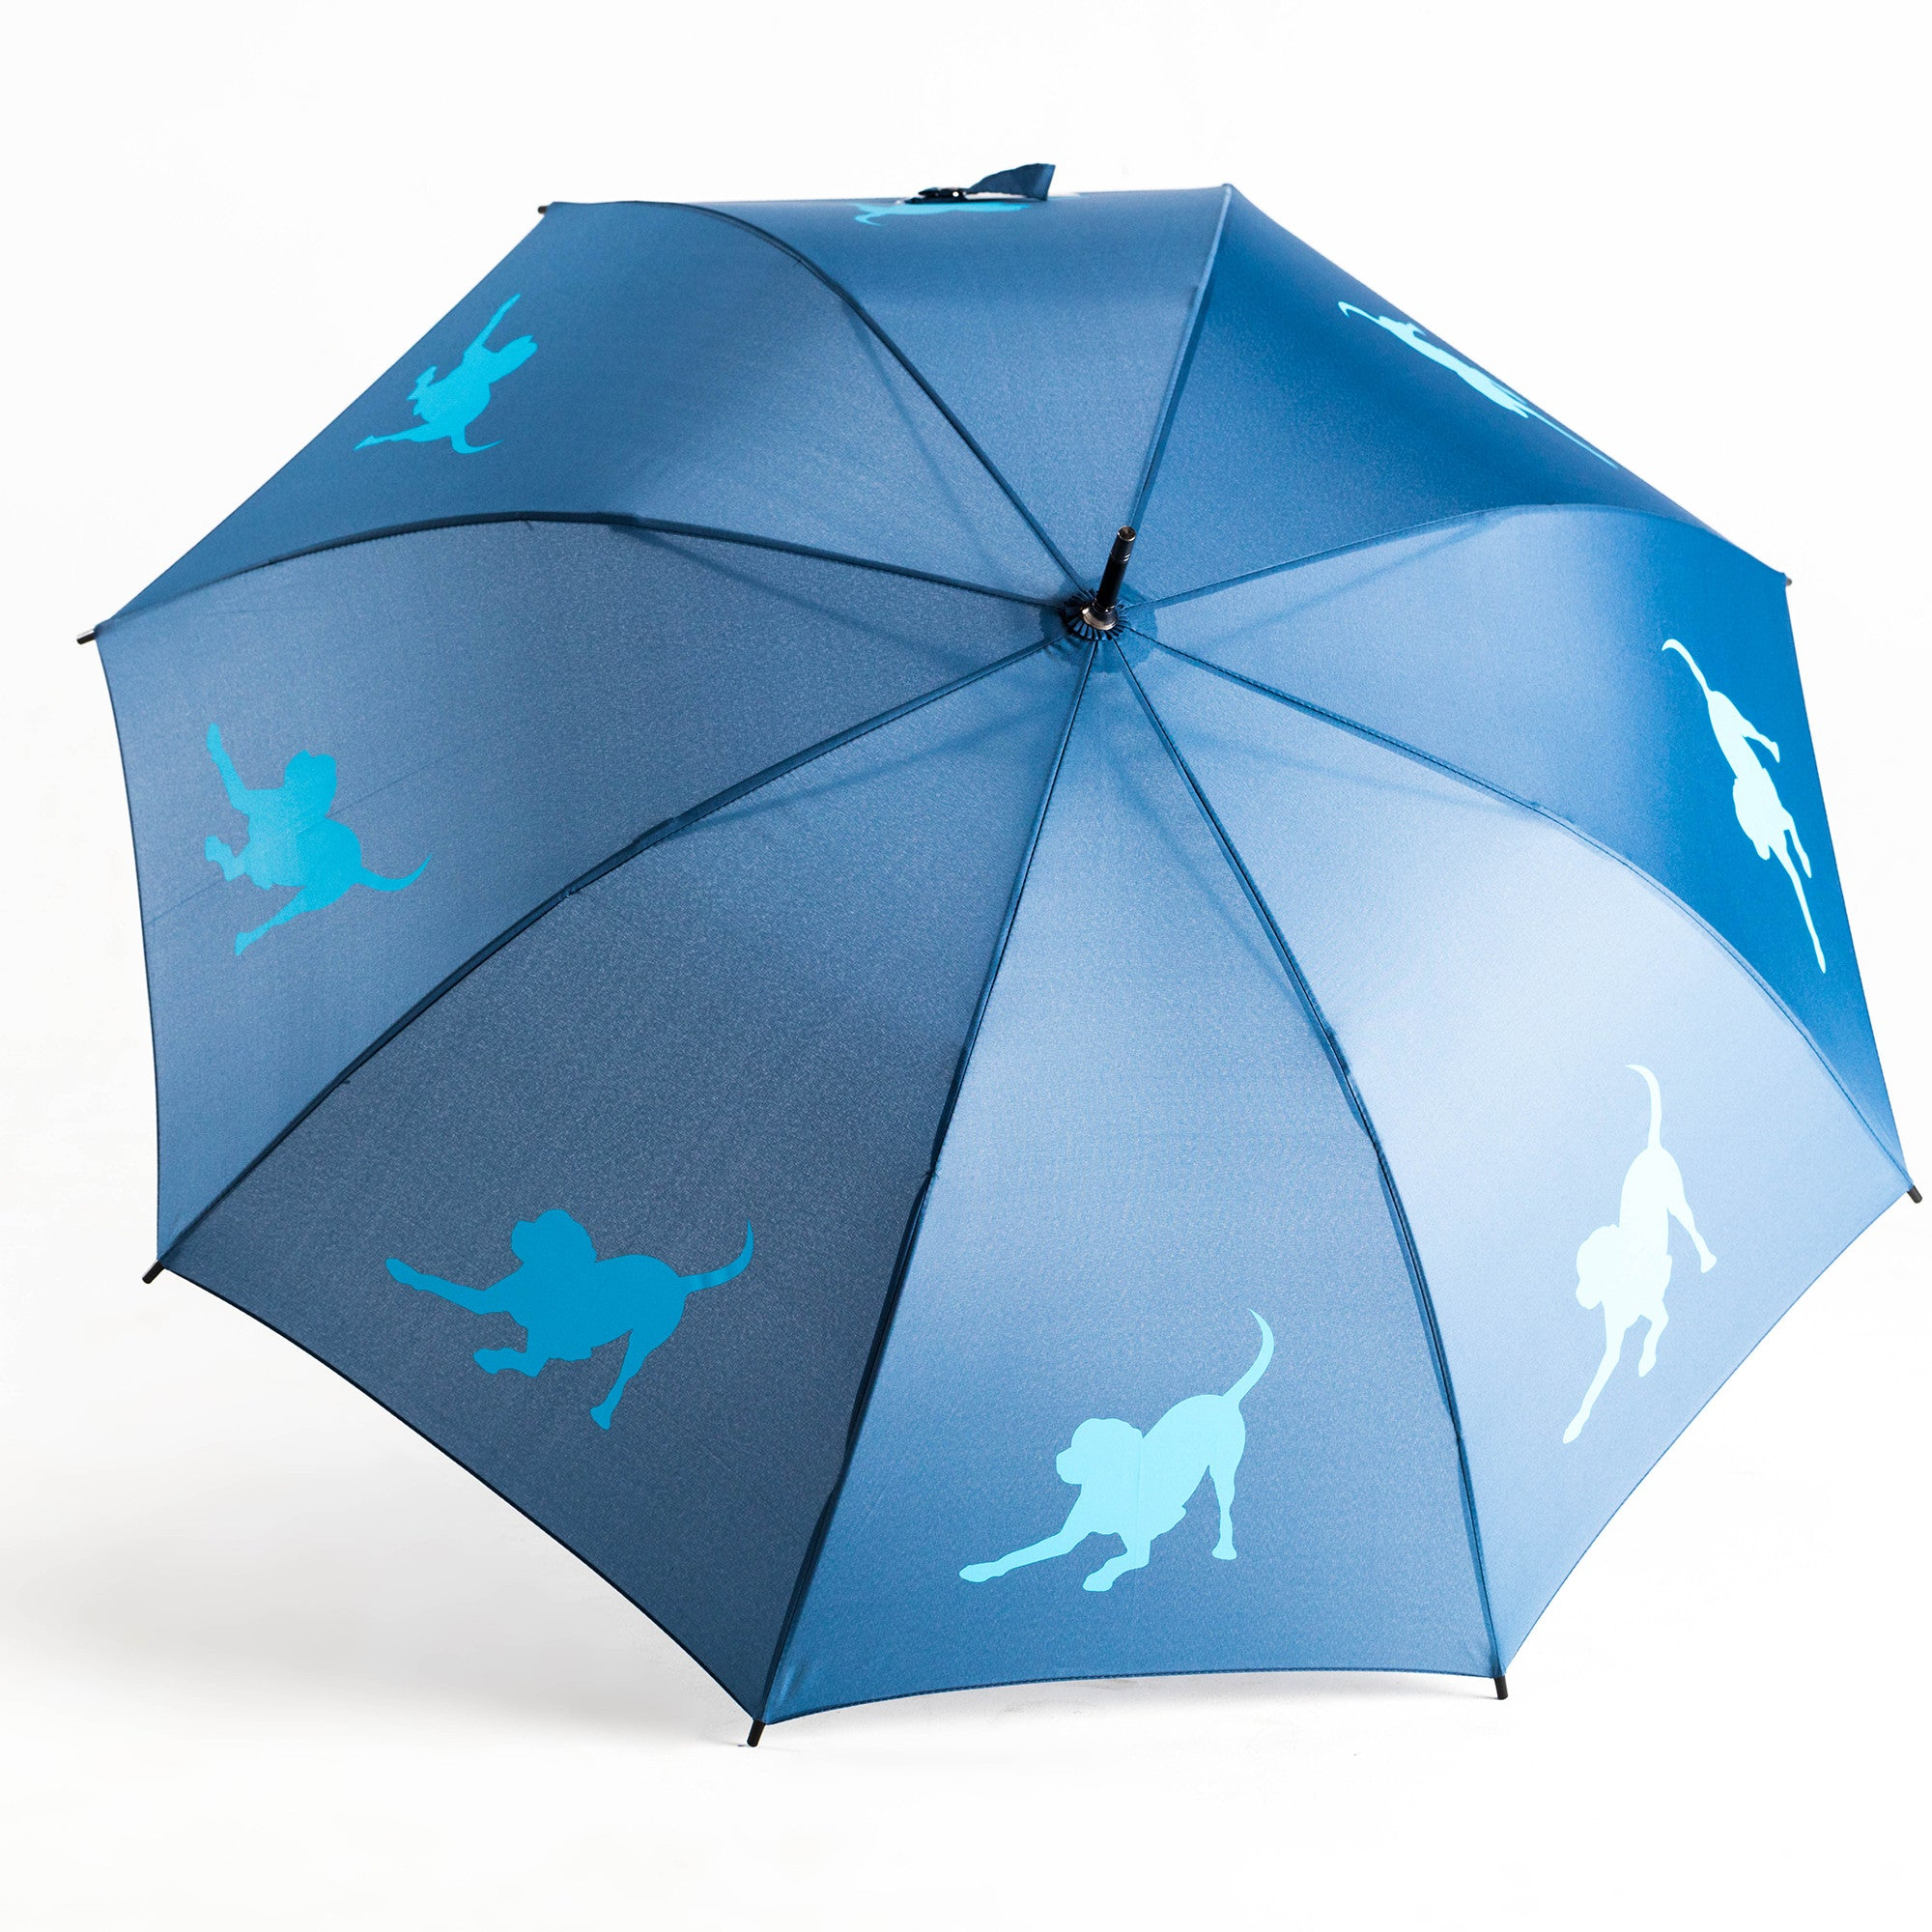 Labrador Retriever Umbrella Royal Blue on Navy Blue